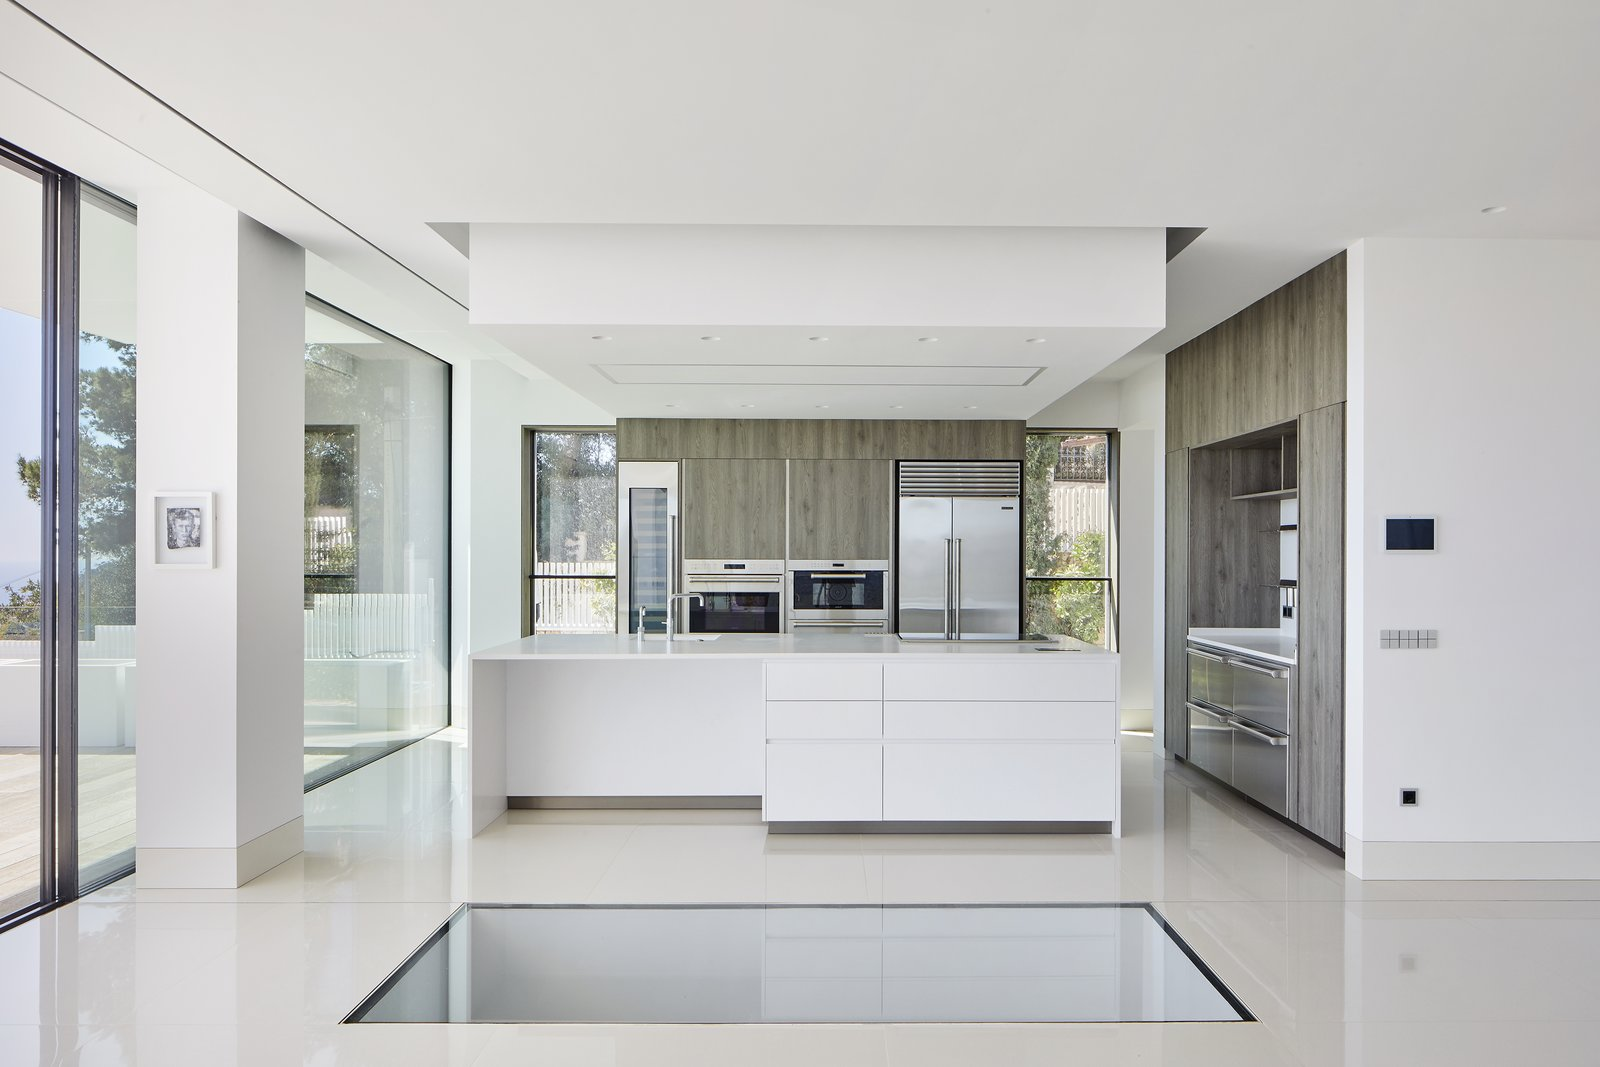 Kitchen, Wall Oven, White, Metal, Microwave, Wine Cooler, Drop In, Laminate, Ceiling, Granite, Range, Range Hood, Dishwasher, Ice Maker, Table, Beverage Center, Cooktops, Wood, Refrigerator, and Porcelain Tile Kitchen.  Best Kitchen White Refrigerator Beverage Center Cooktops Wall Oven Ceiling Photos from 廚房